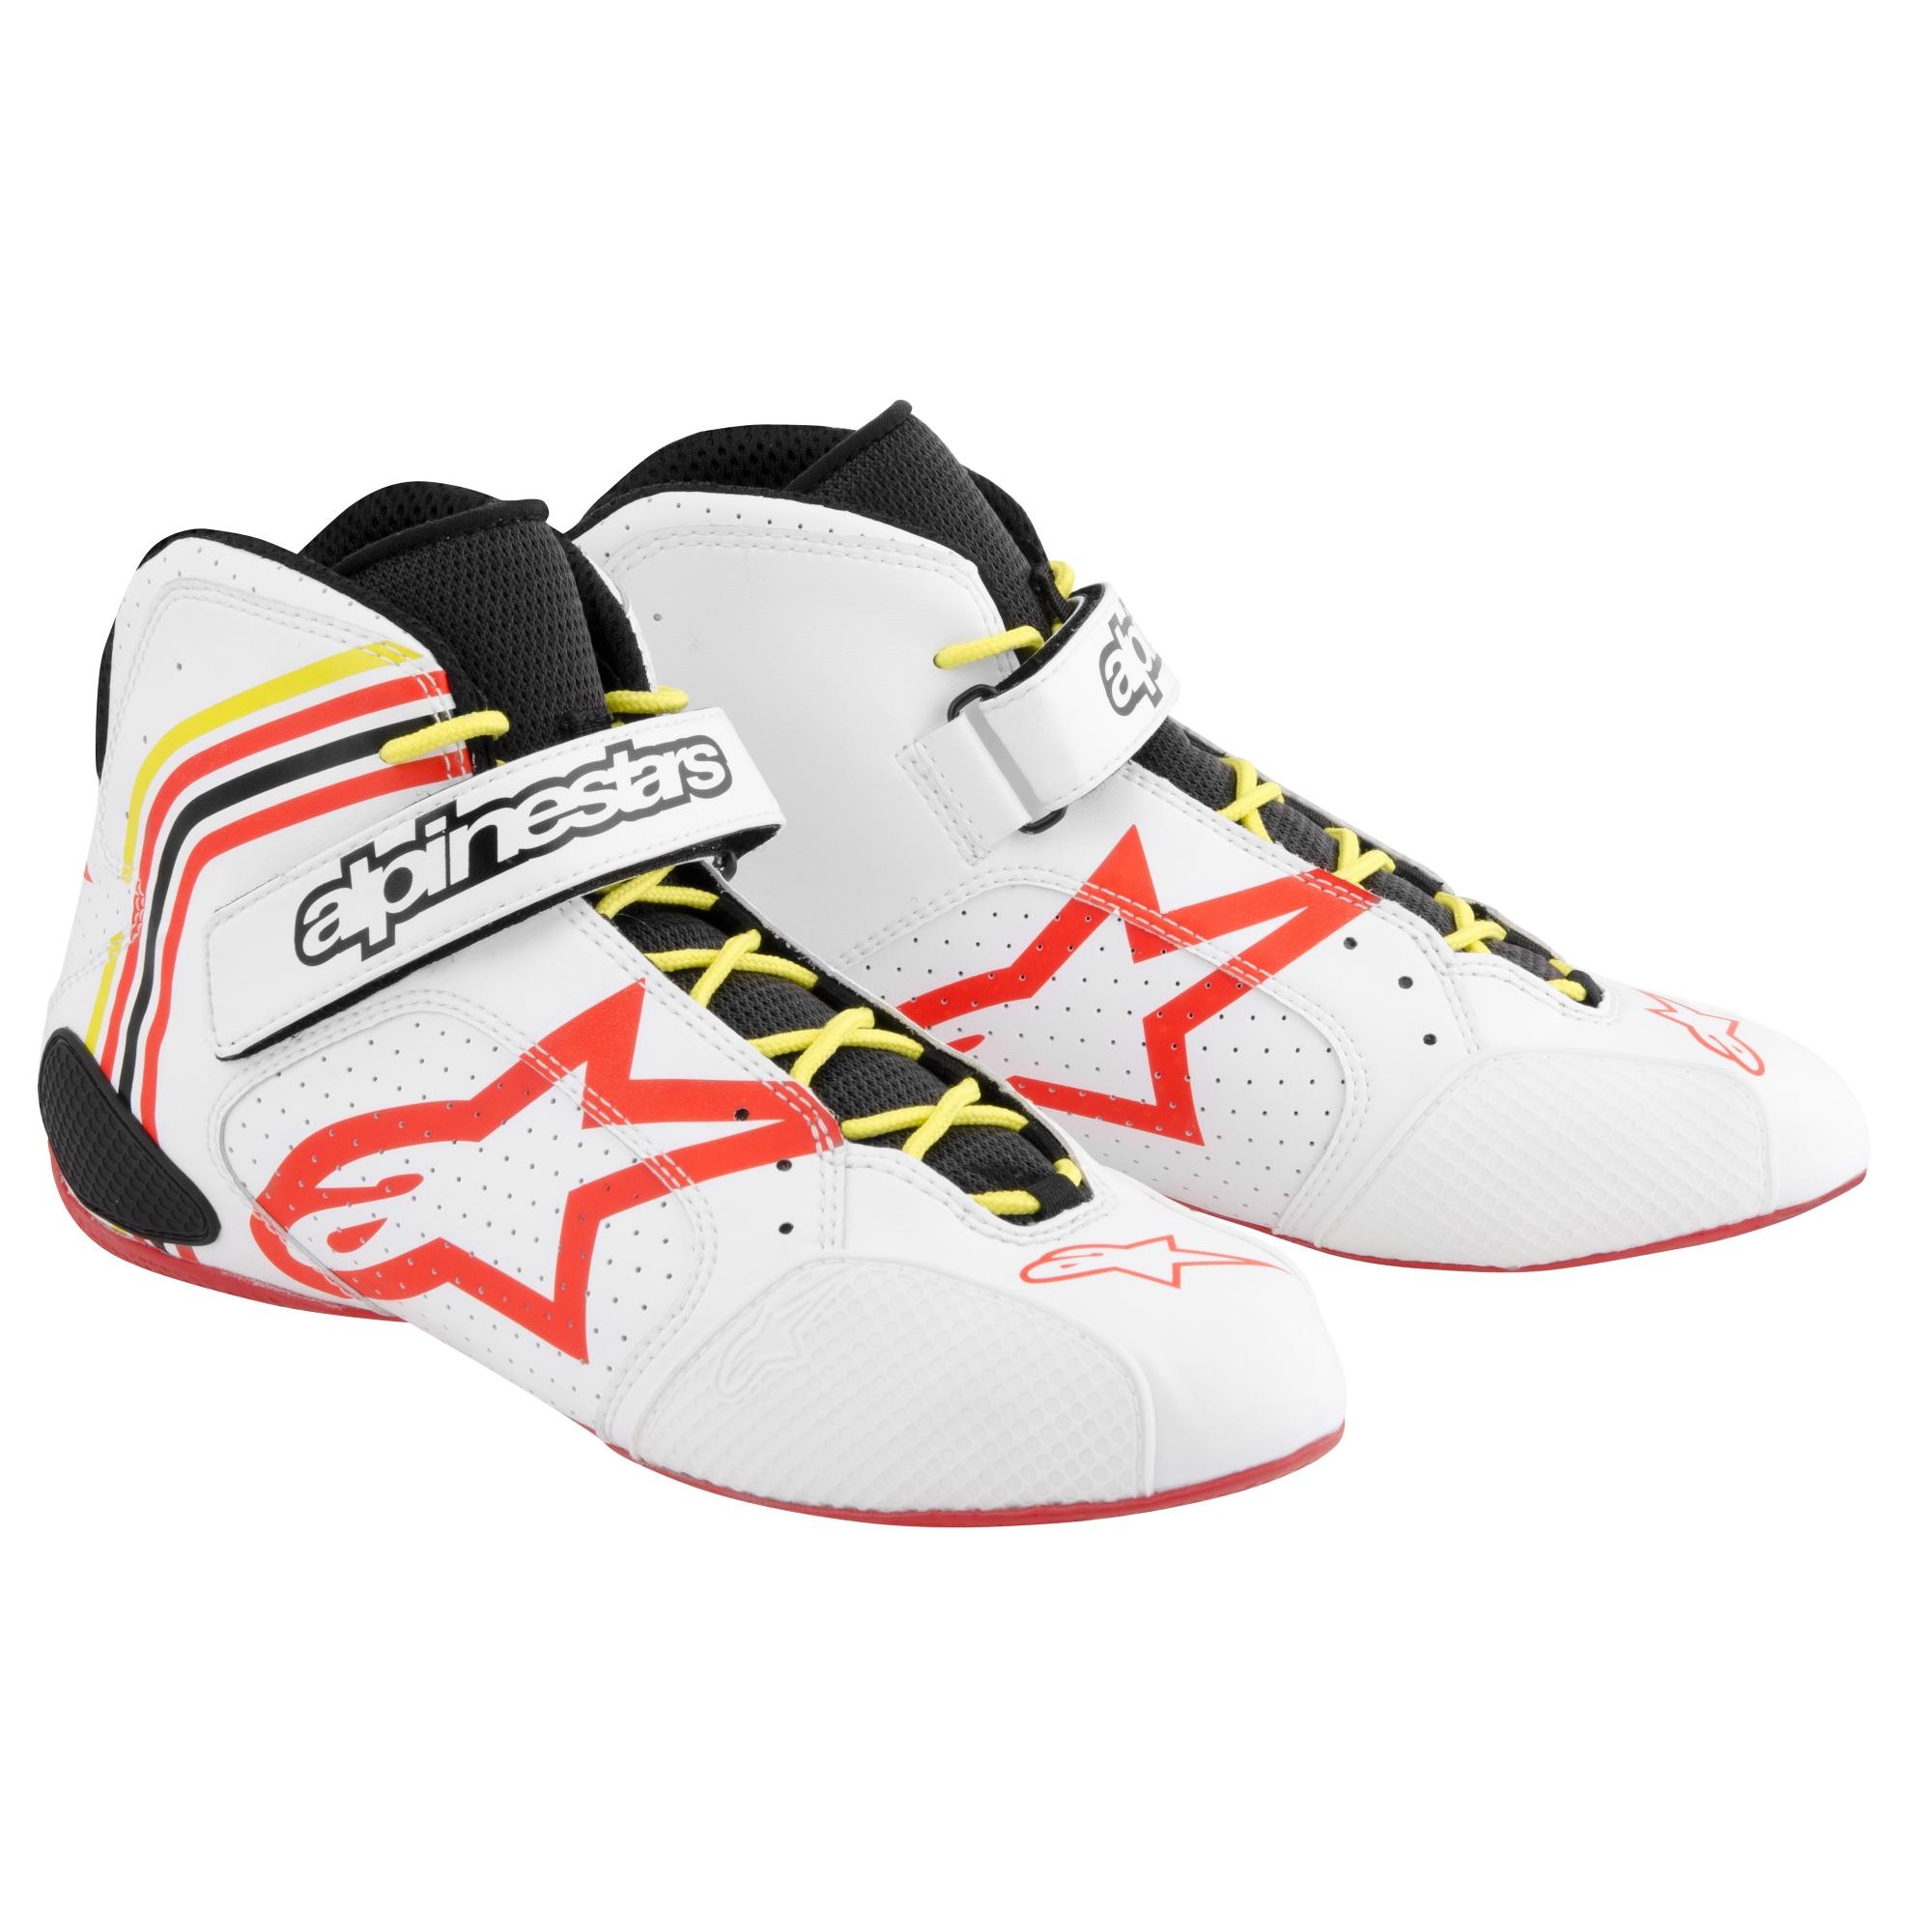 aff2367e739 Alpinestars Tech 1-K Kart Boots Limited Edition White from Merlin ...